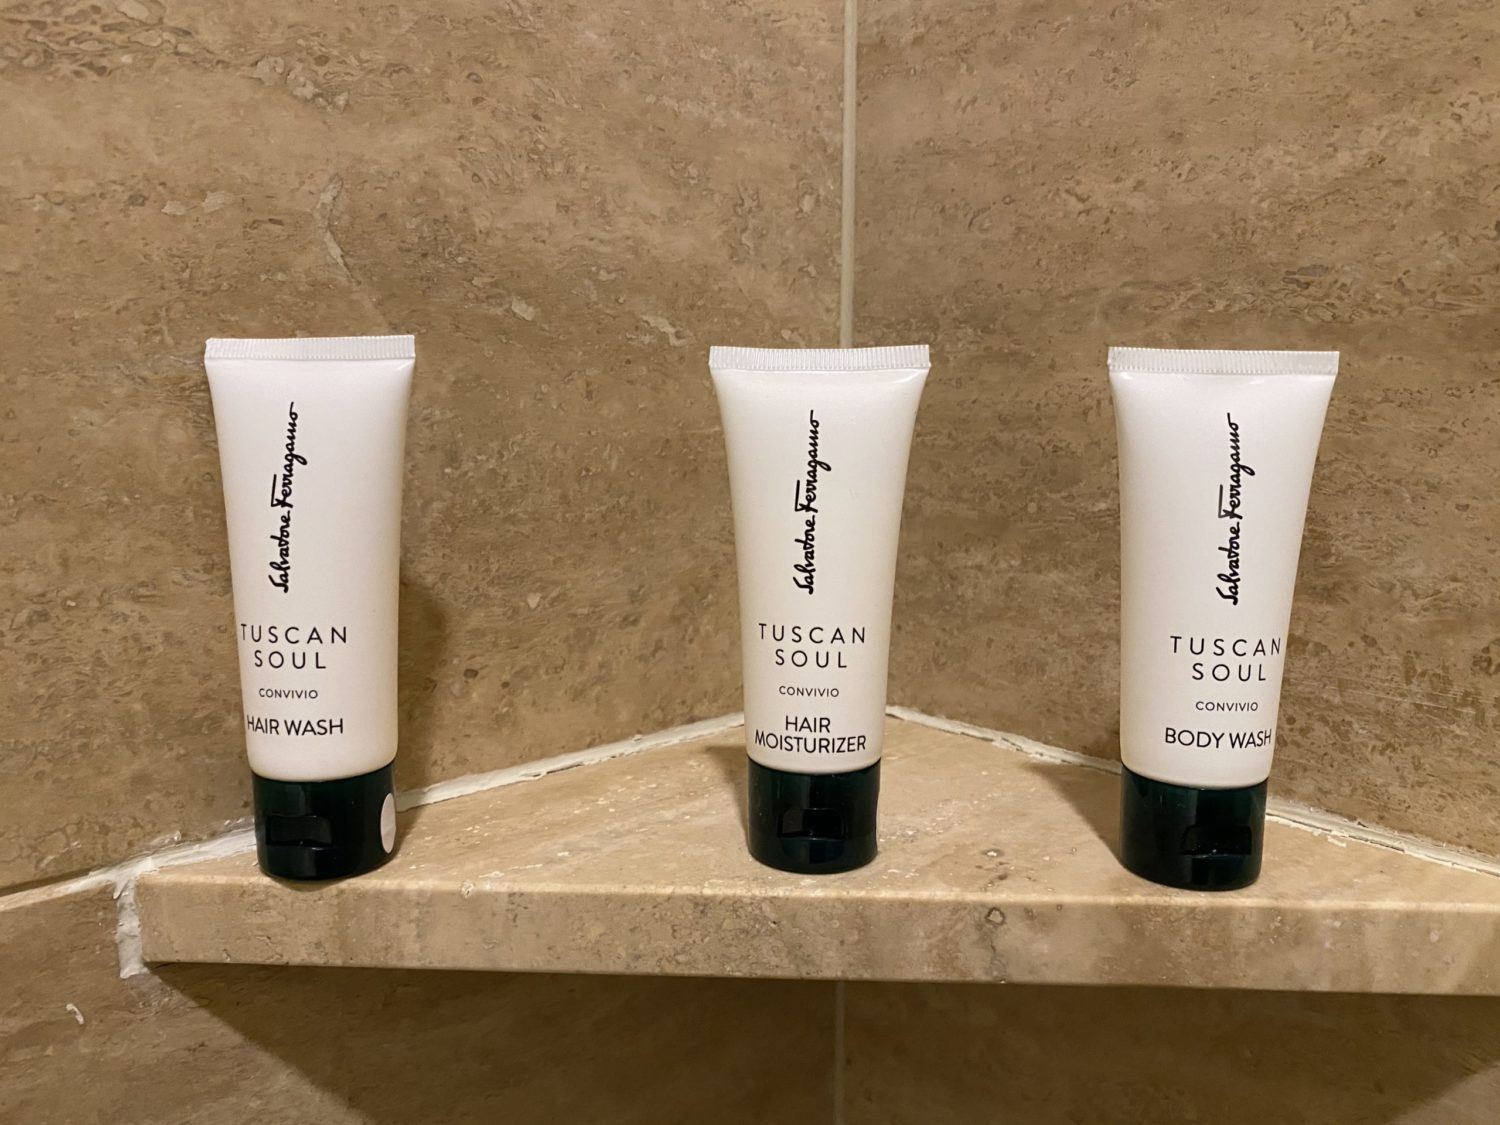 waldorf astoria las vegas toiletries